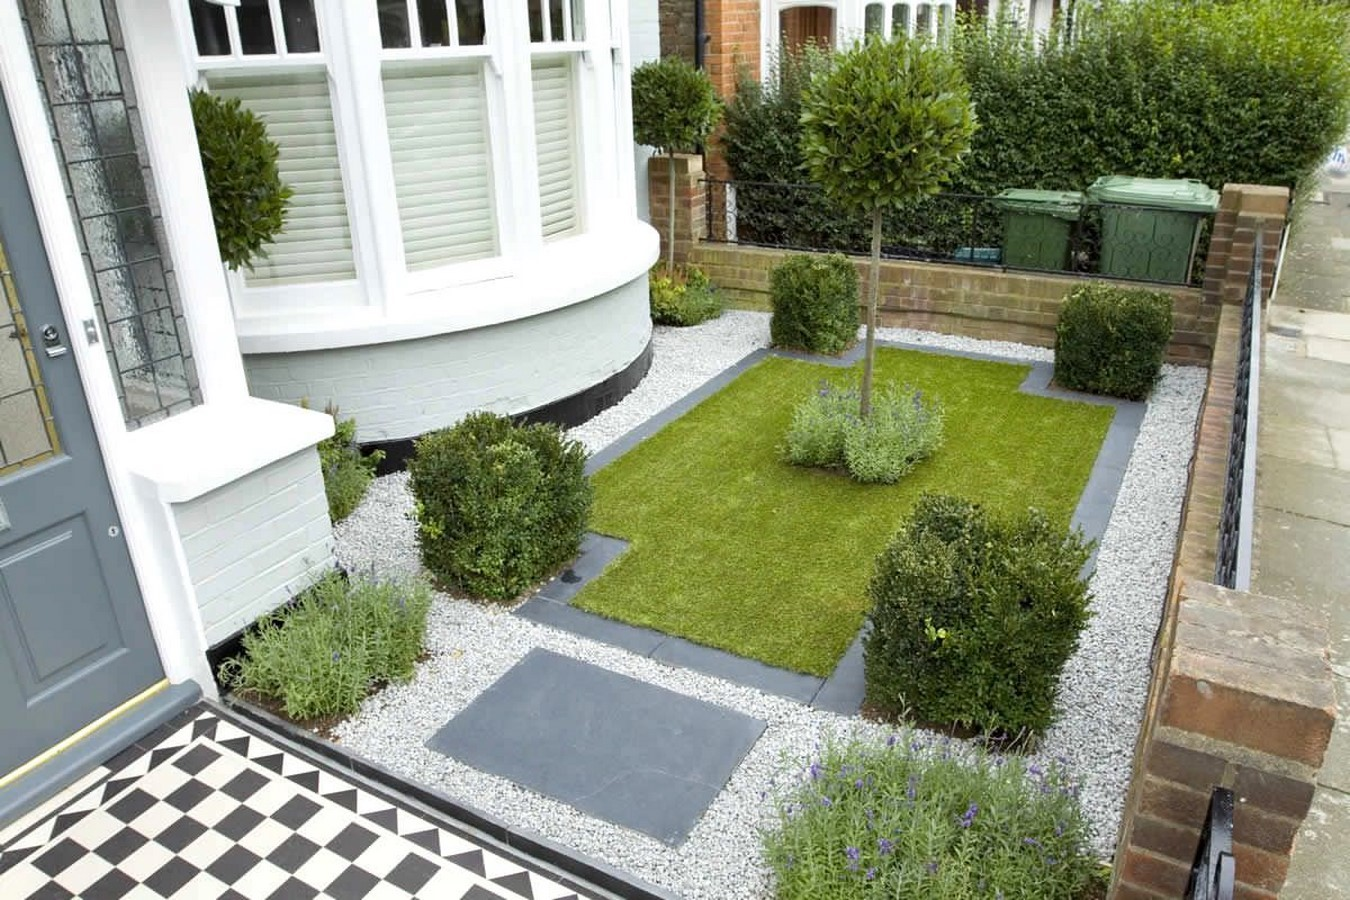 50 Ideas and Tips for Landscaping - Sheet45